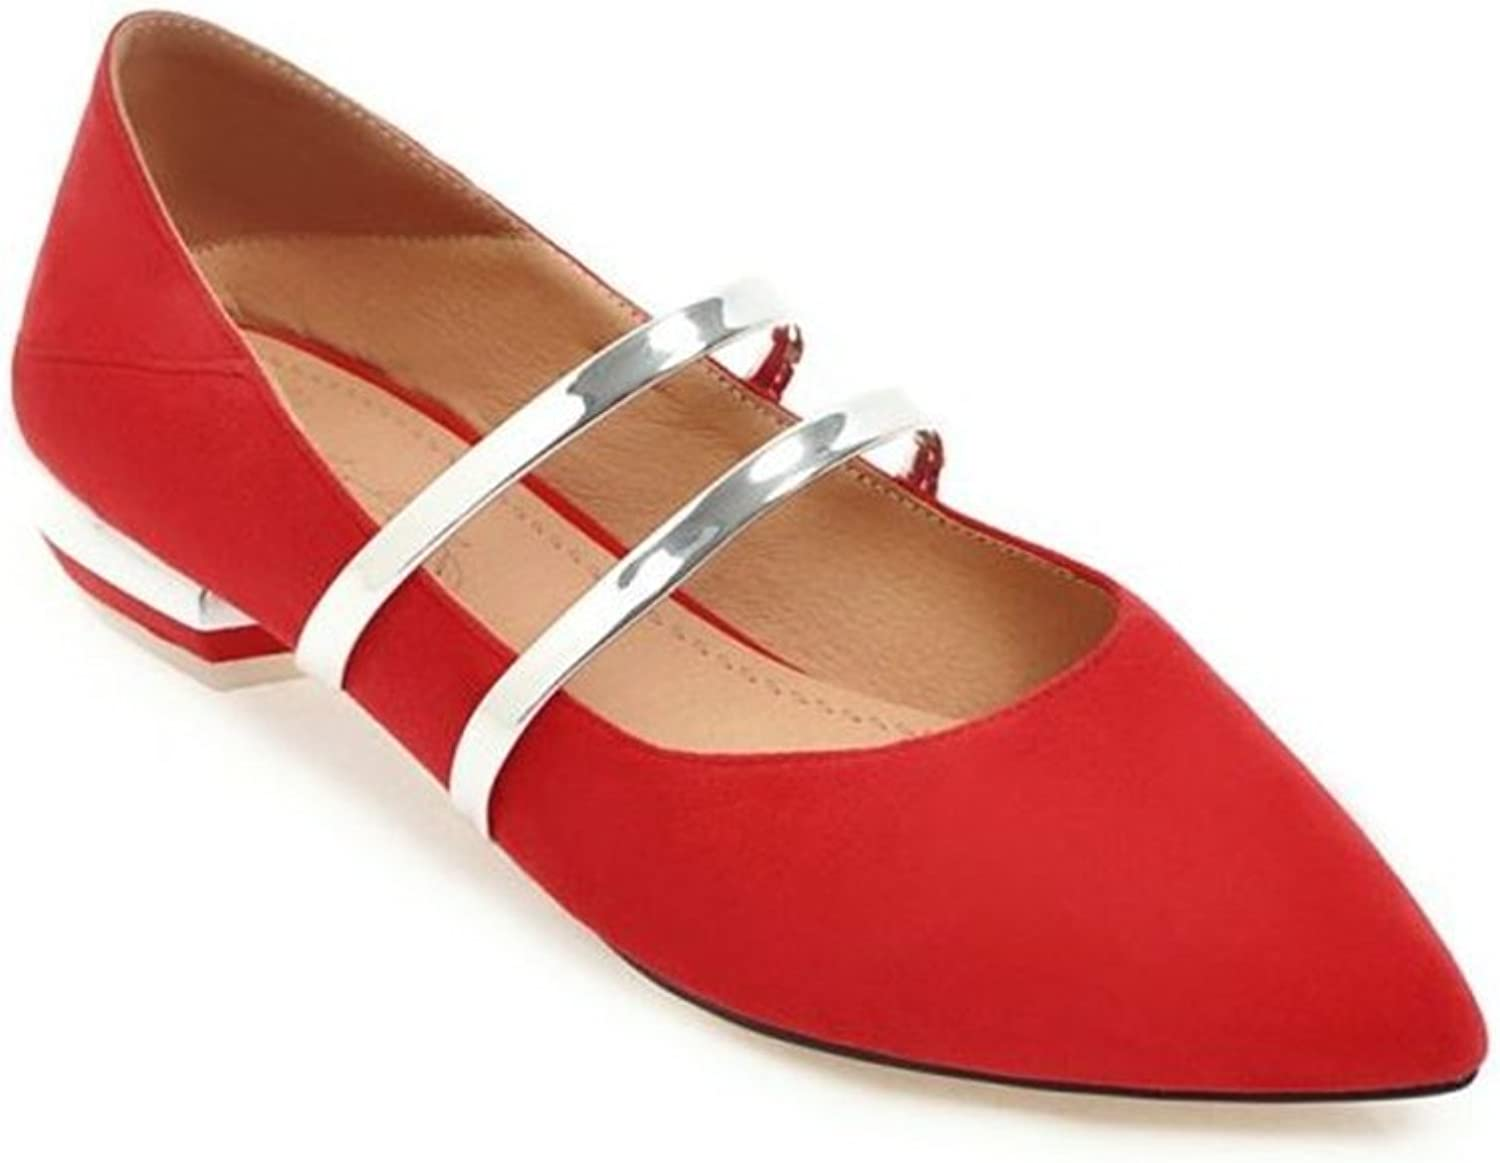 pink town Women's Classic Pointy Toe Ballet Flat Suede Comfort Fashion Slip On Flats shoes